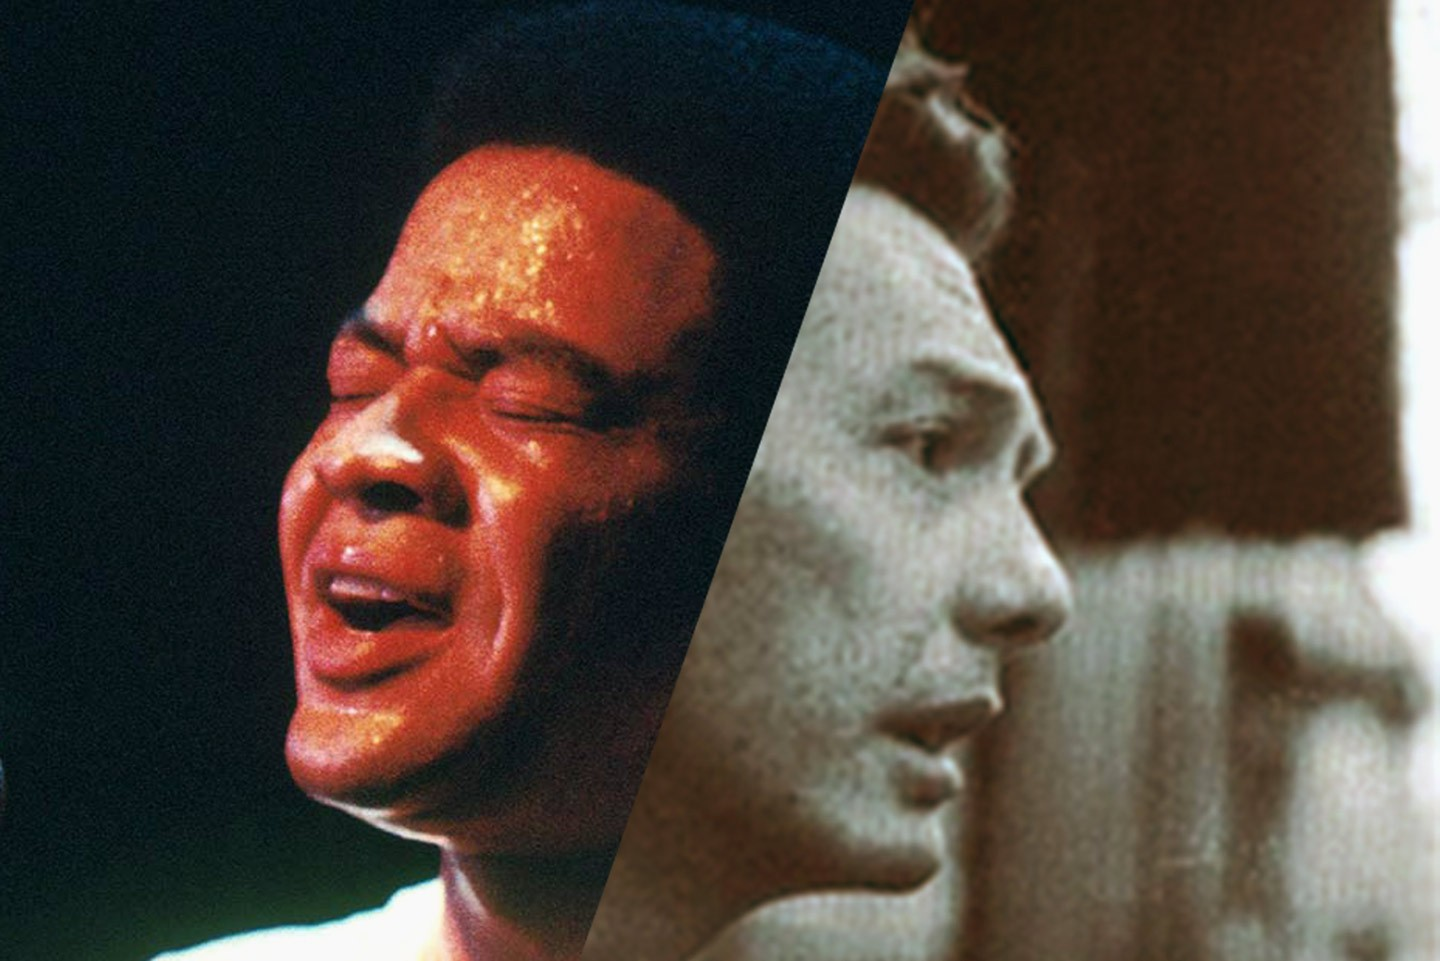 Bill Withers et Fred Neil, génies express